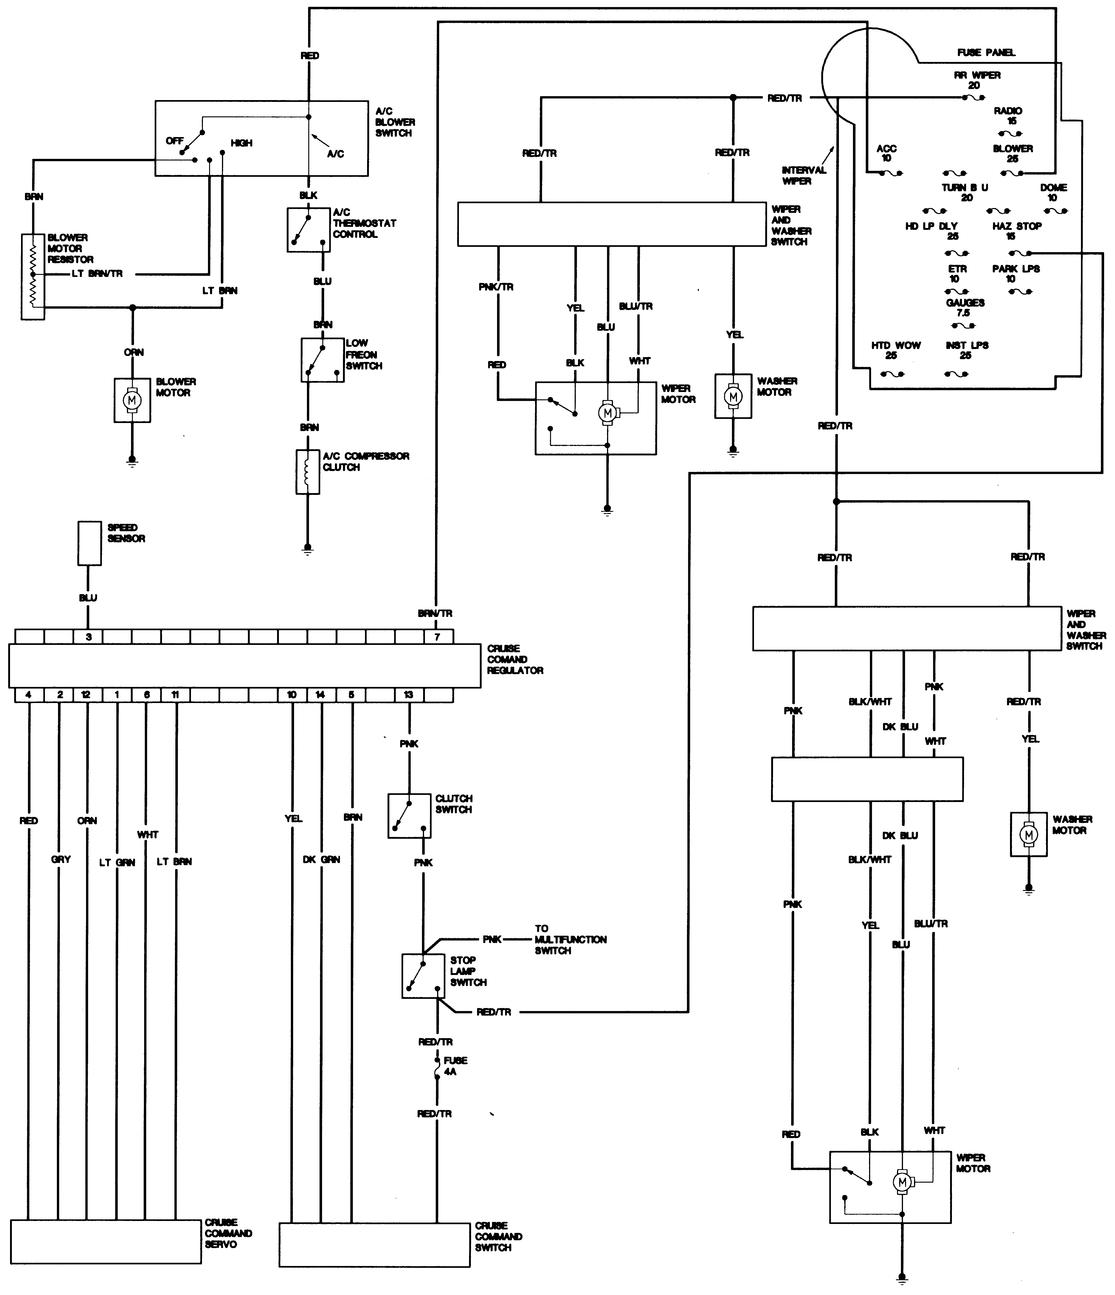 1985-jeep-cj-chasis-1-of-2 Jaguar Alternator Wiring Diagram on ac compressor wire diagram, alternator relay diagram, alternator generator, car alternator diagram, alternator charging system, alternator connector diagram, alternator fuse diagram, alternator replacement, dodge alternator diagram, alternator engine diagram, alternator plug diagram, gm alternator diagram, alternator parts, alternator winding diagram, toyota alternator diagram, how alternator works diagram, 13av60kg011 parts diagram, ford alternator diagram, generator diagram, alex anderson alternator diagram,